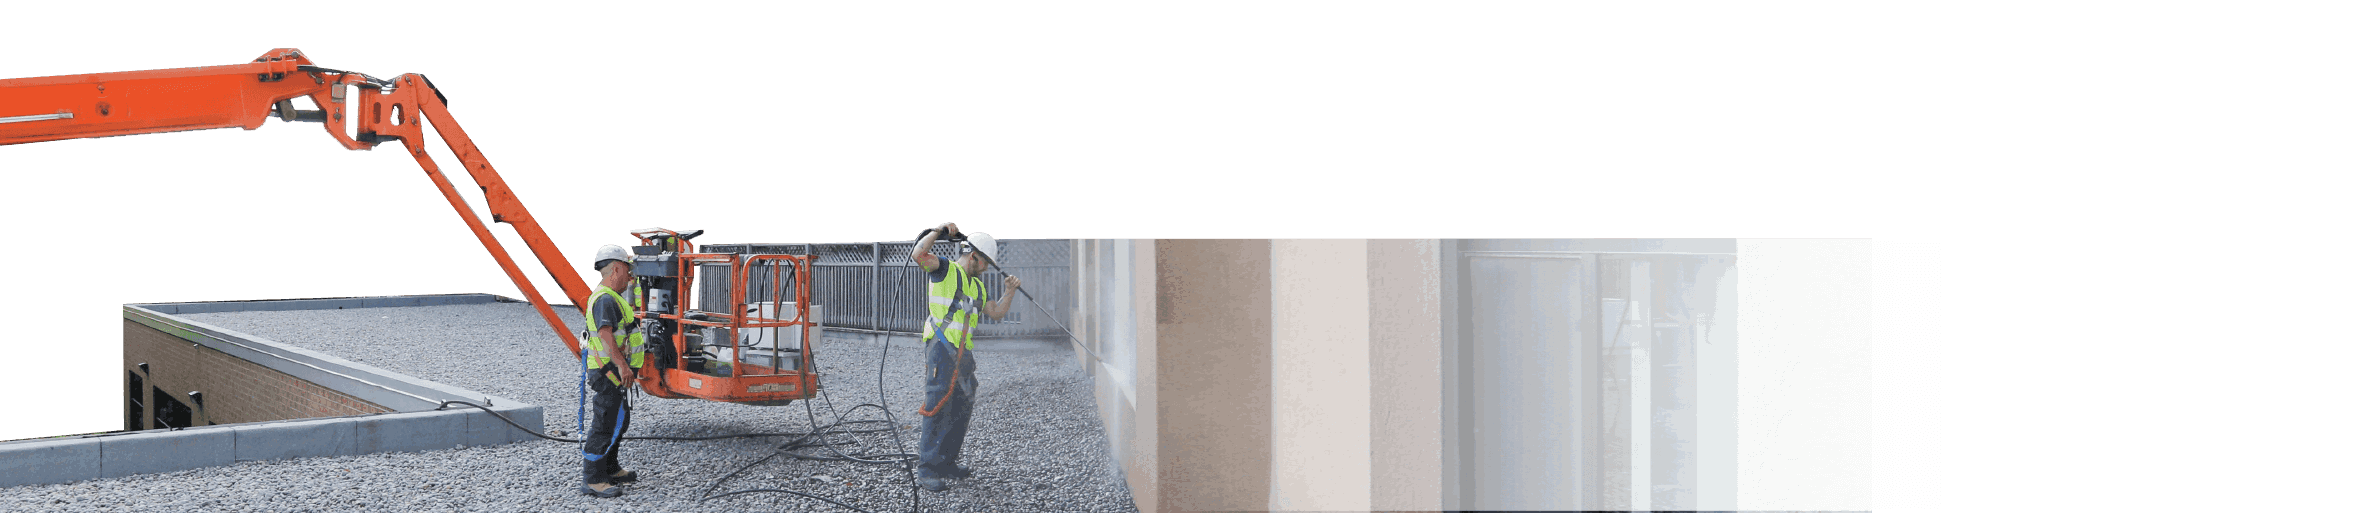 Tough Cleaning Service in Toronto - Construction Services - Nusens Niche Contracting Services in Toronto - Halifax - Calgary - Vancouver